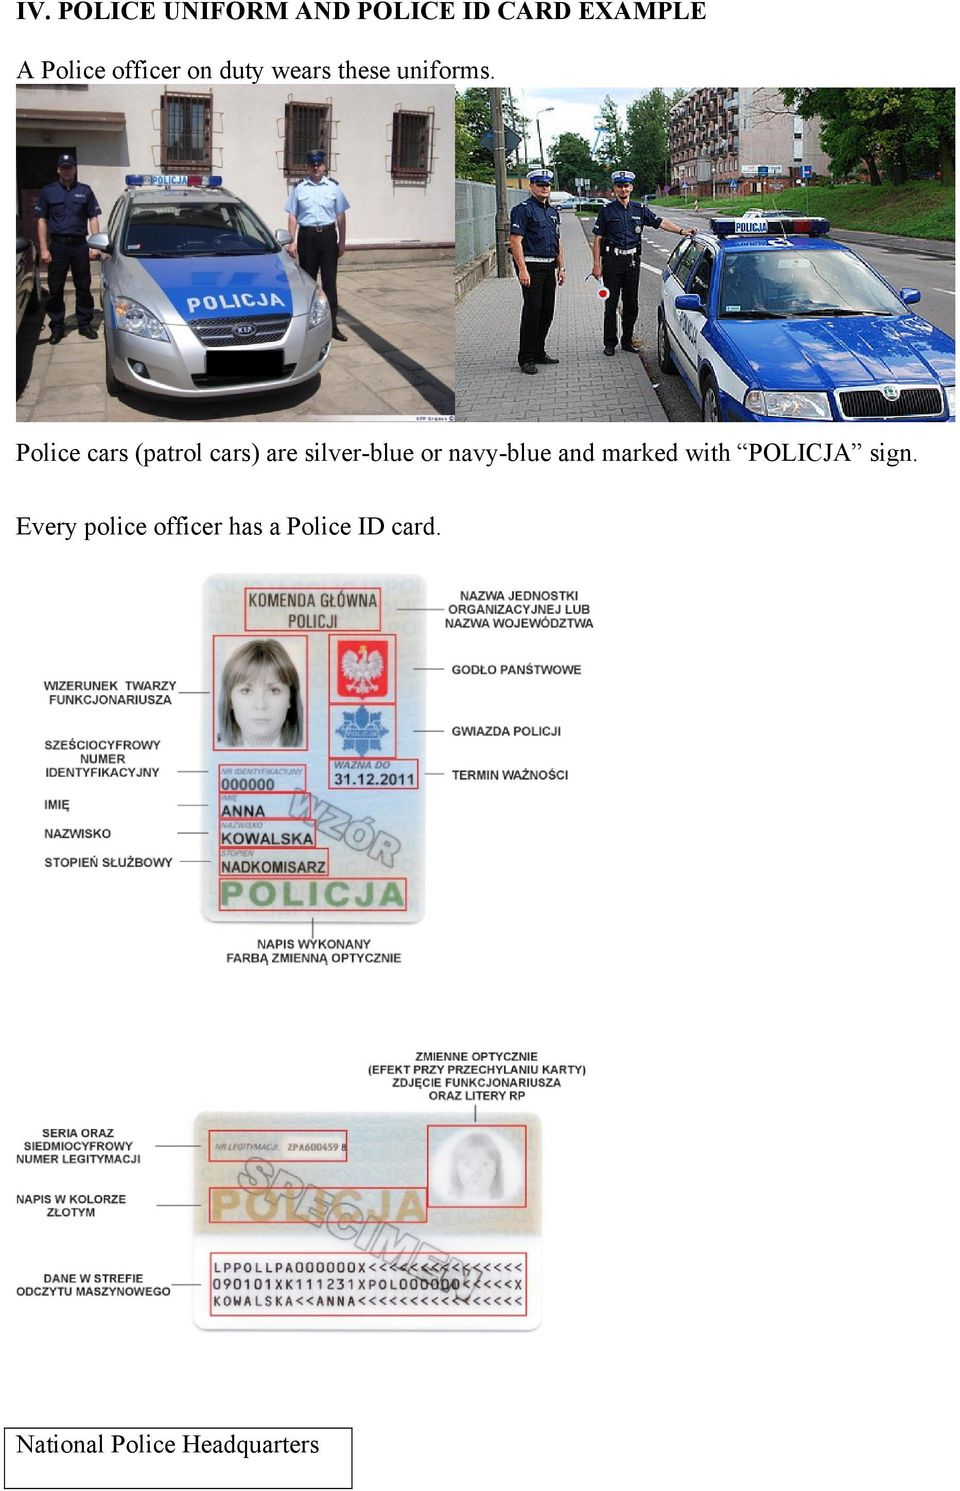 Police cars (patrol cars) are silver-blue or navy-blue and